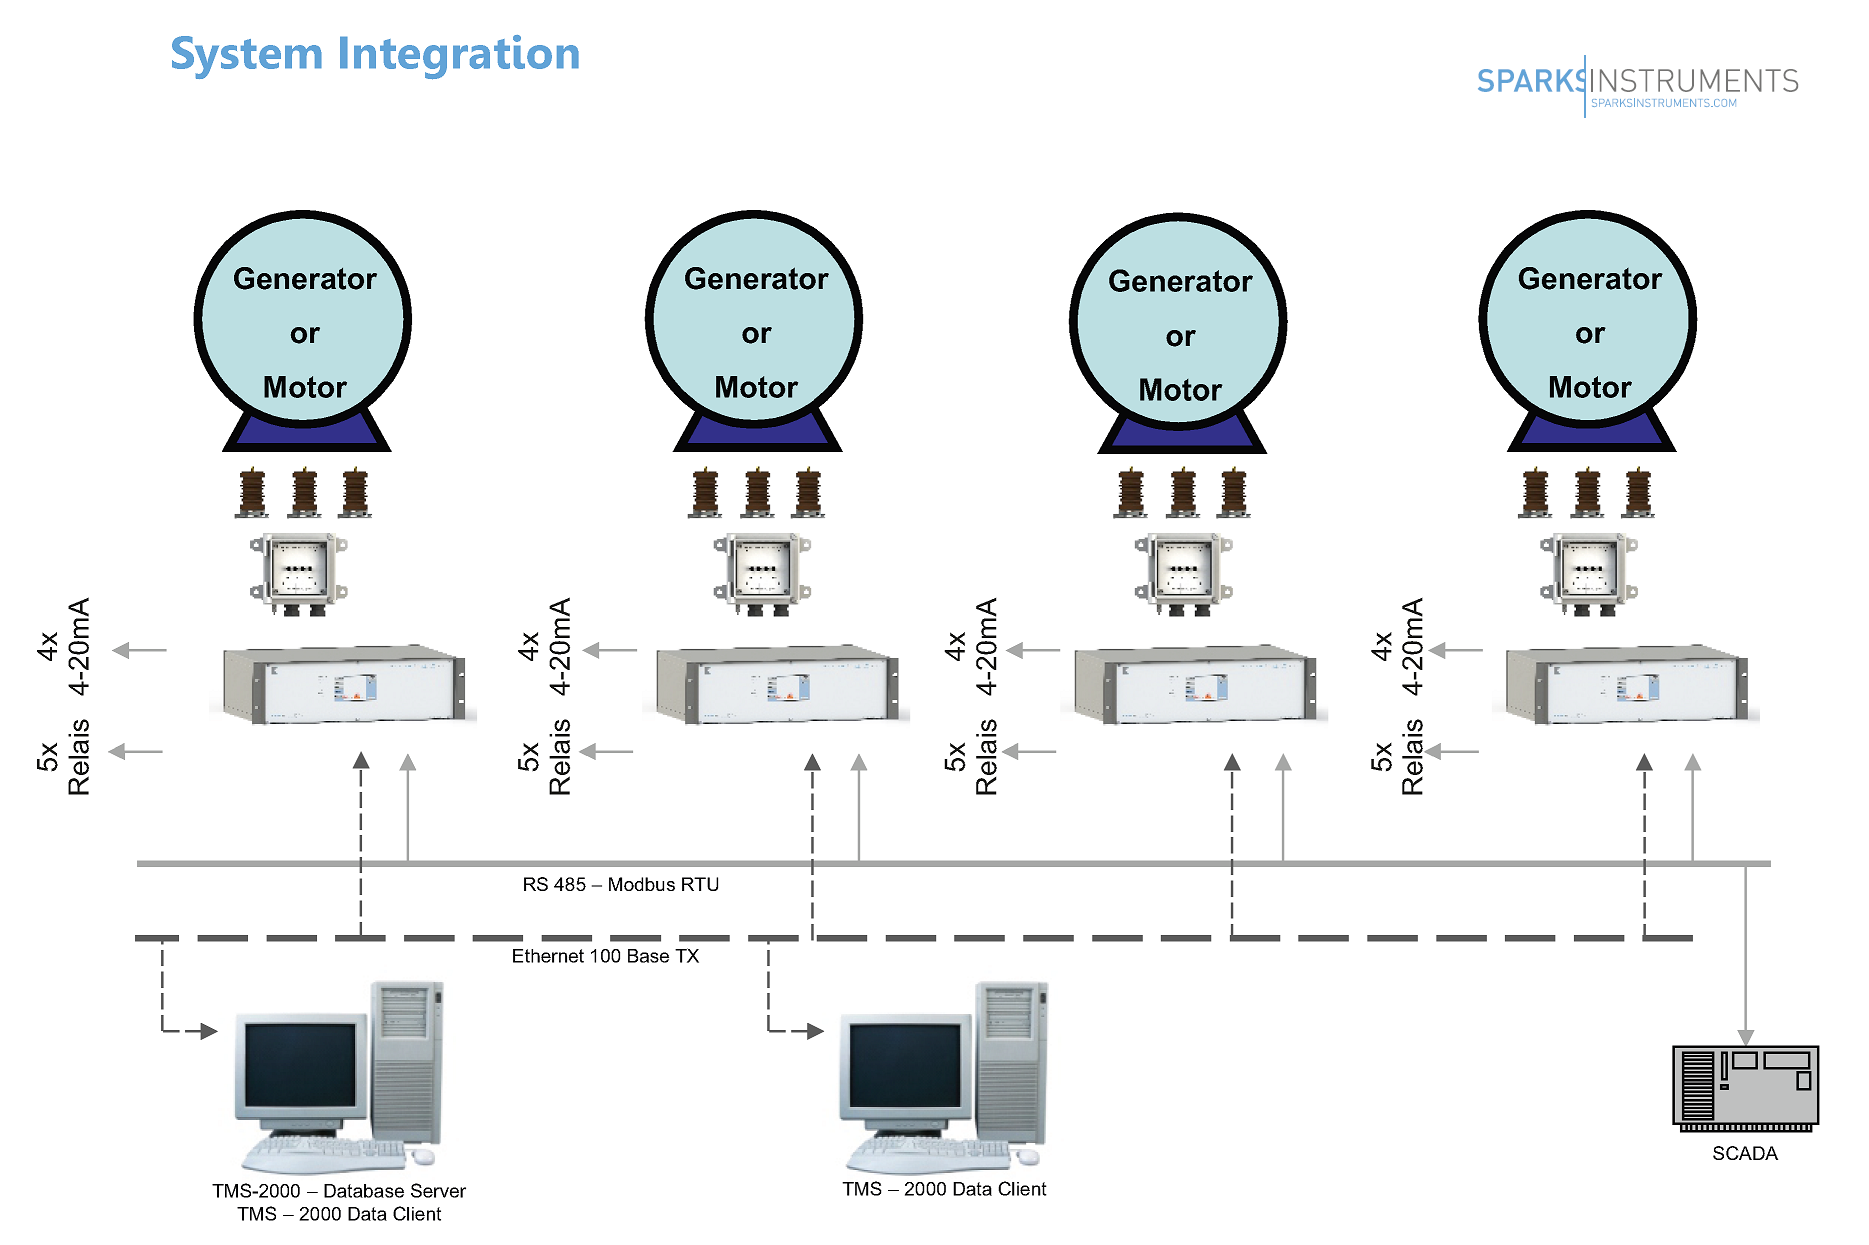 system Intregration with SCADA